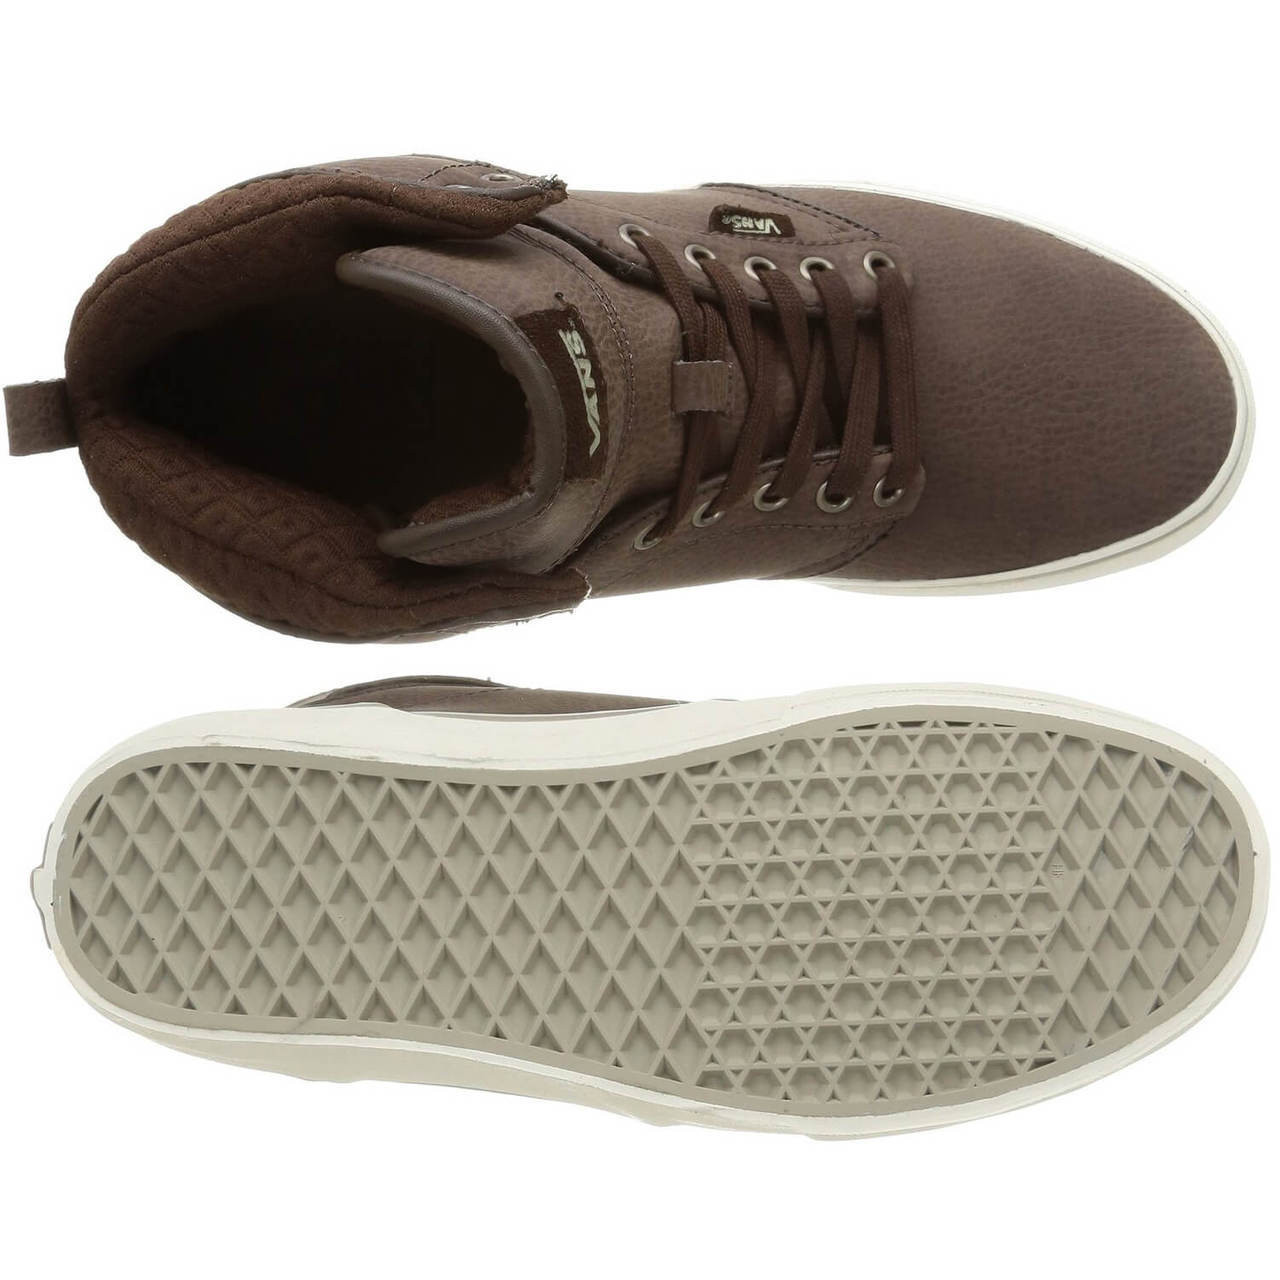 c3ab41875d7add Leather Vans Shoes - Men s Atwood High Top Leather Shoes Brown ...